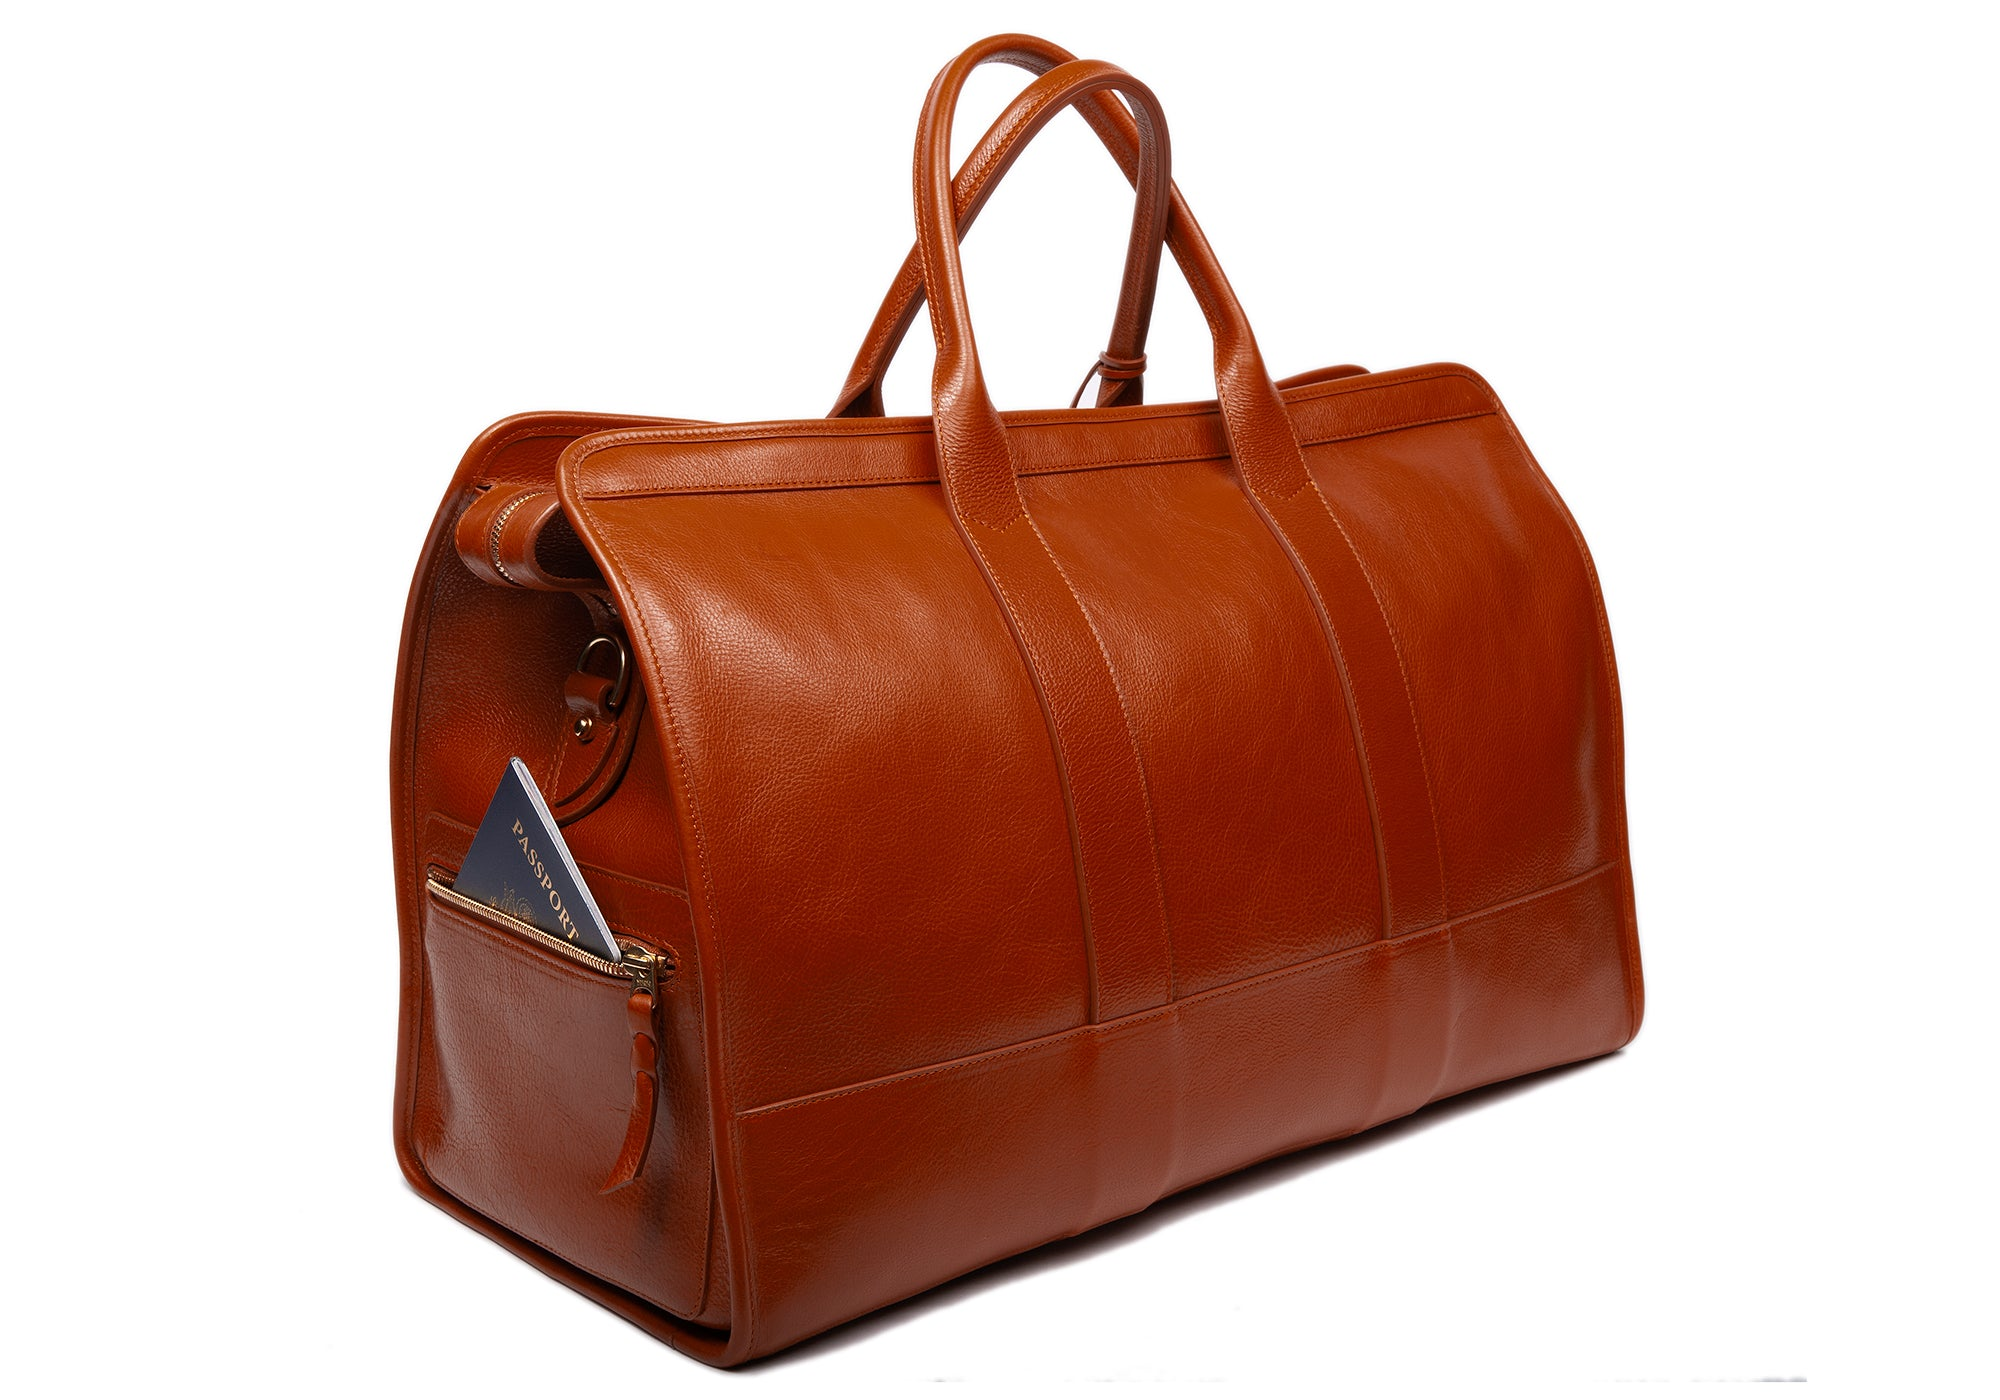 Leather Duffle Travel Bag Saddle Tan